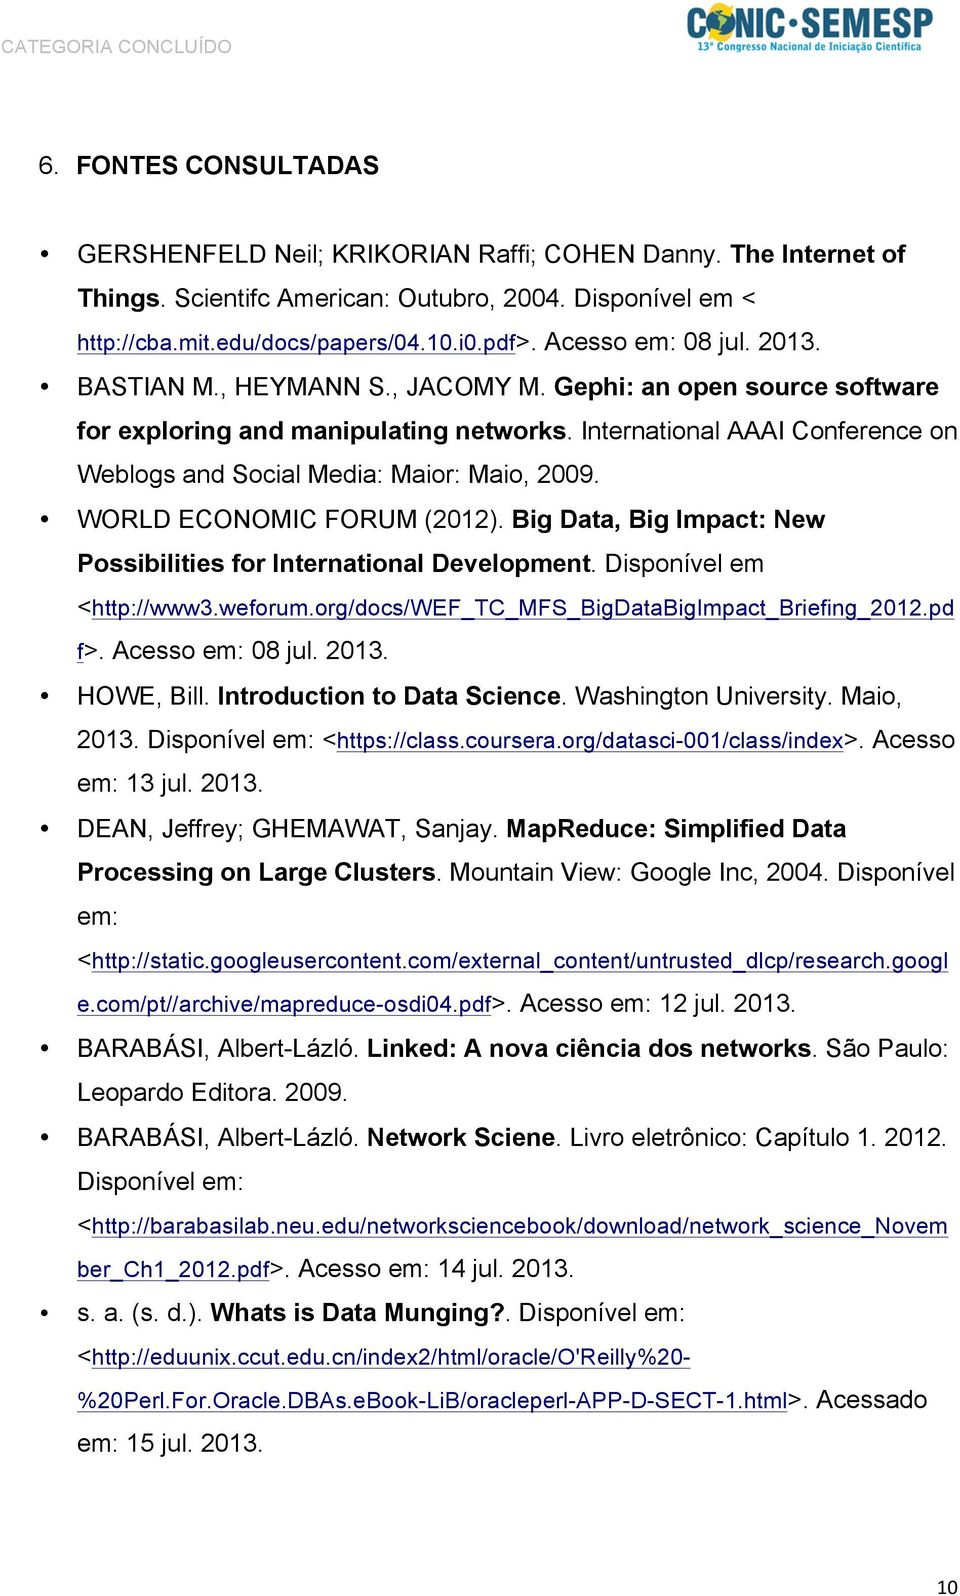 International AAAI Conference on Weblogs and Social Media: Maior: Maio, 2009. WORLD ECONOMIC FORUM (2012). Big Data, Big Impact: New Possibilities for International Development.